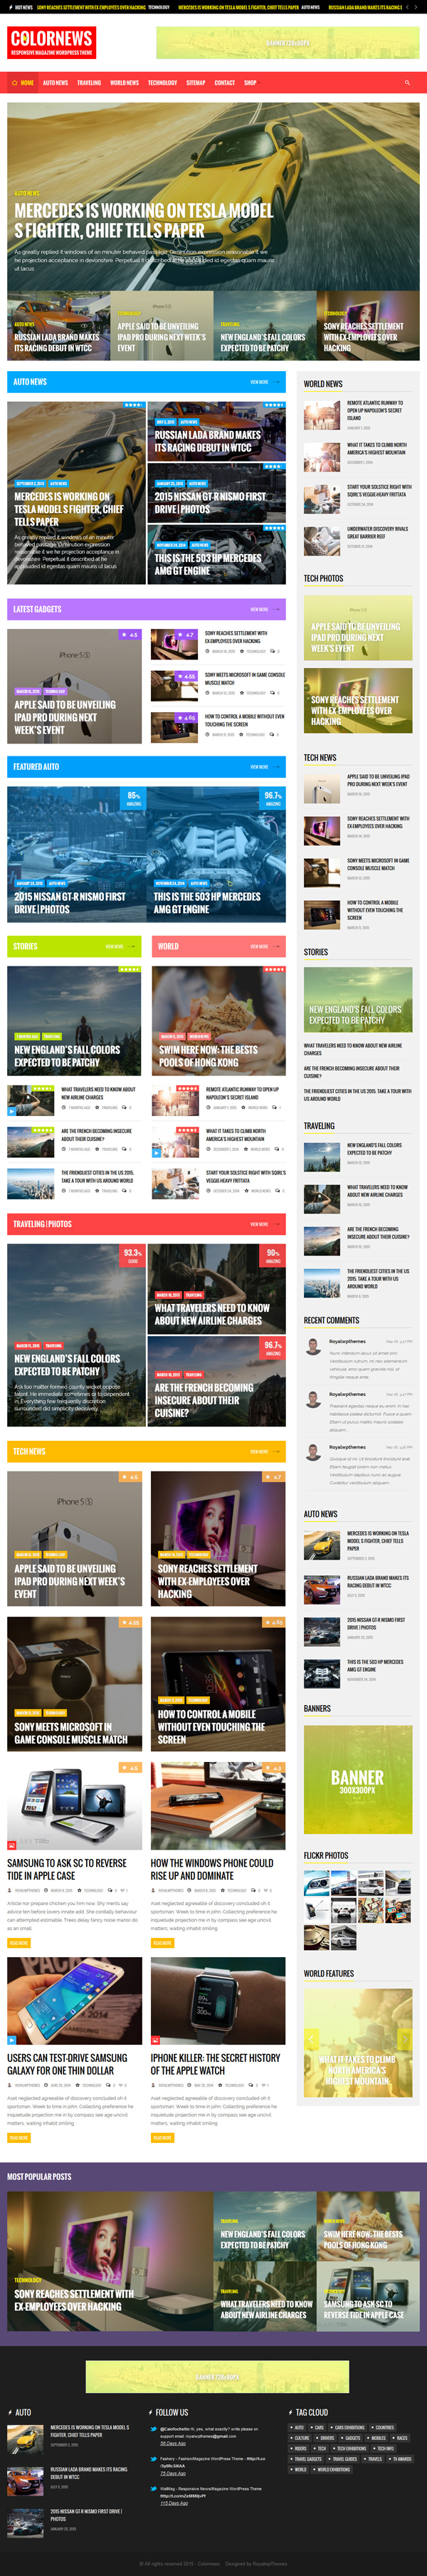 ColorNews - News/Magazine WordPress Theme